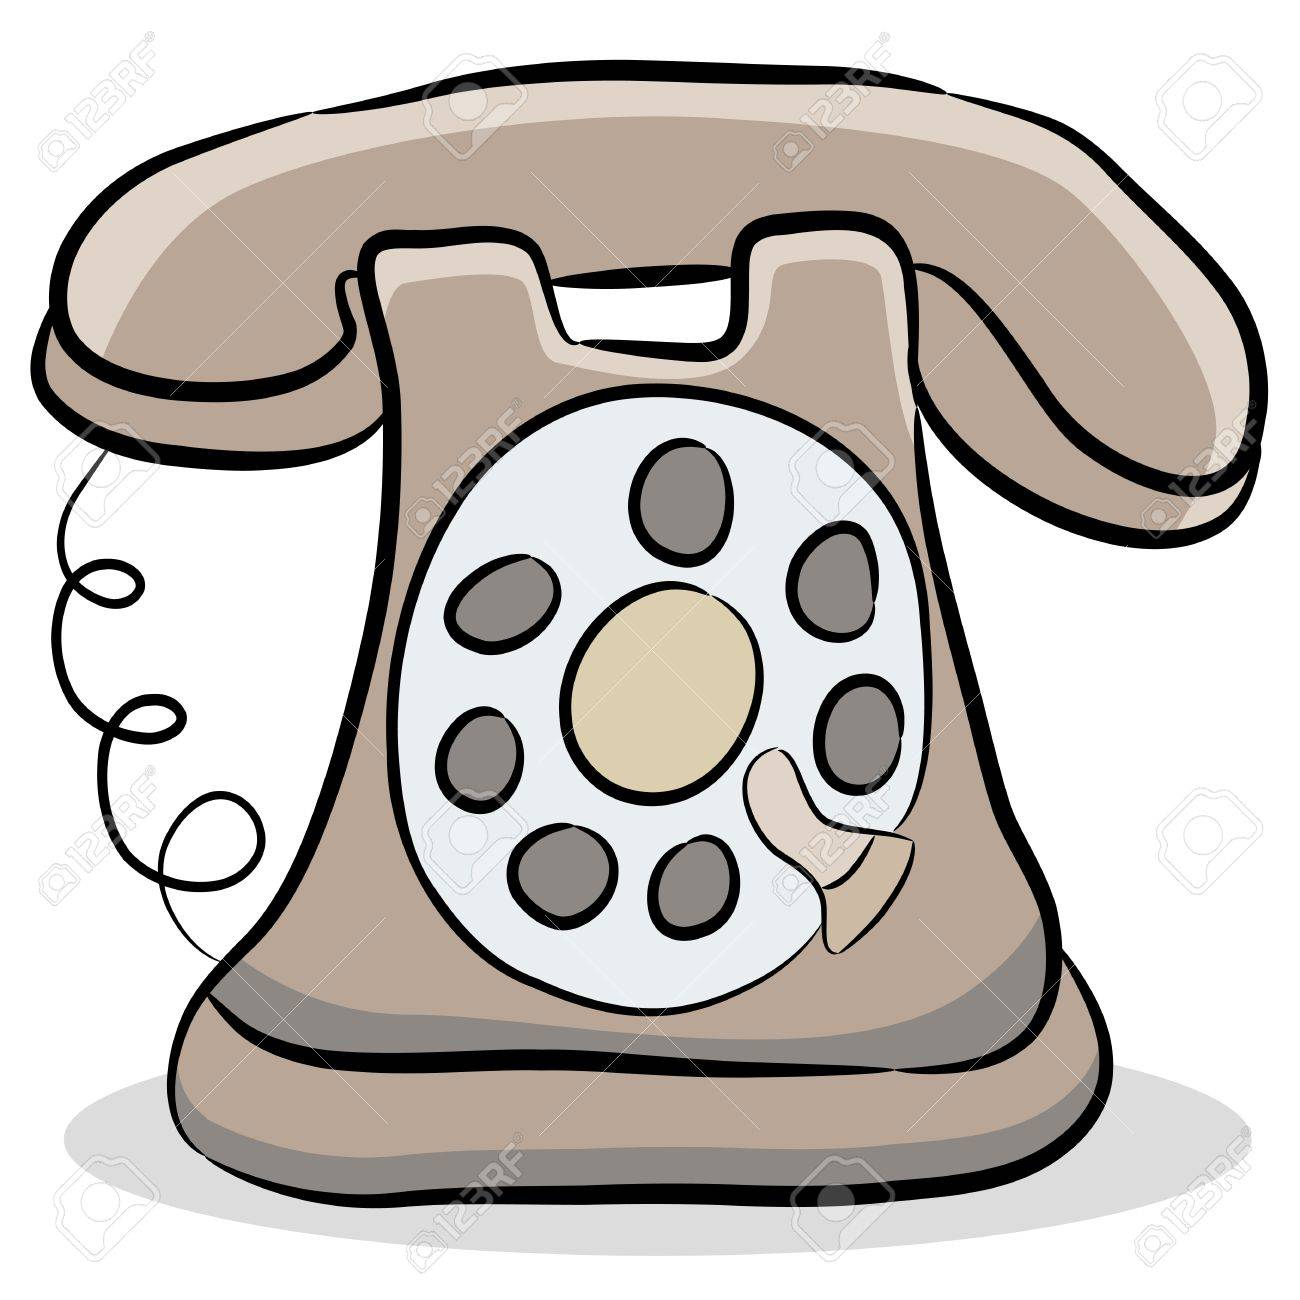 An Image Of A Old Fashioned Telephone Royalty Free Cliparts